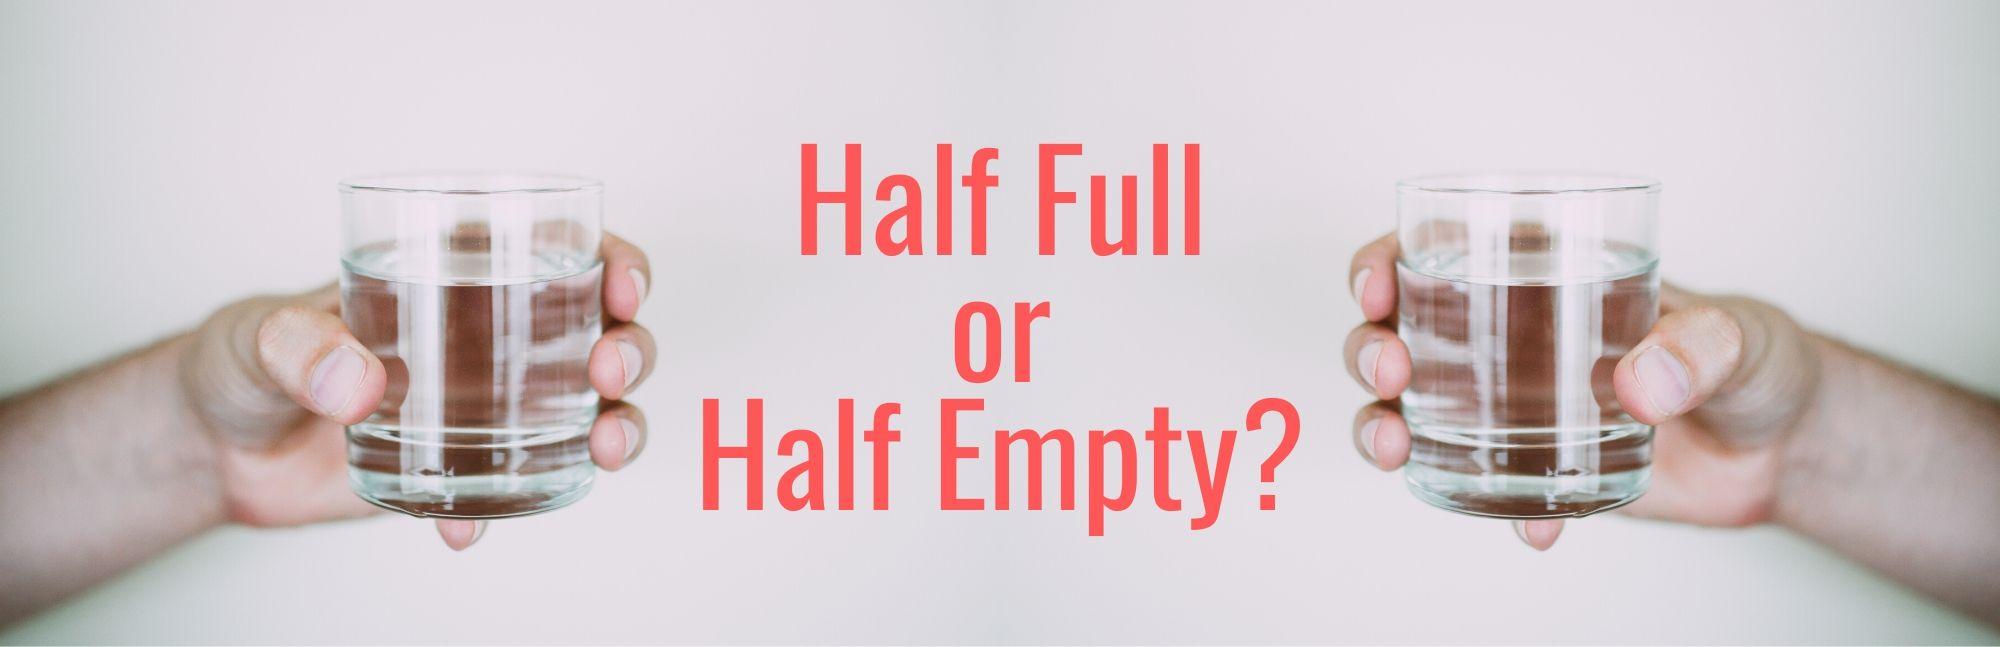 What is Optimism? Is the glass half full or half empty?